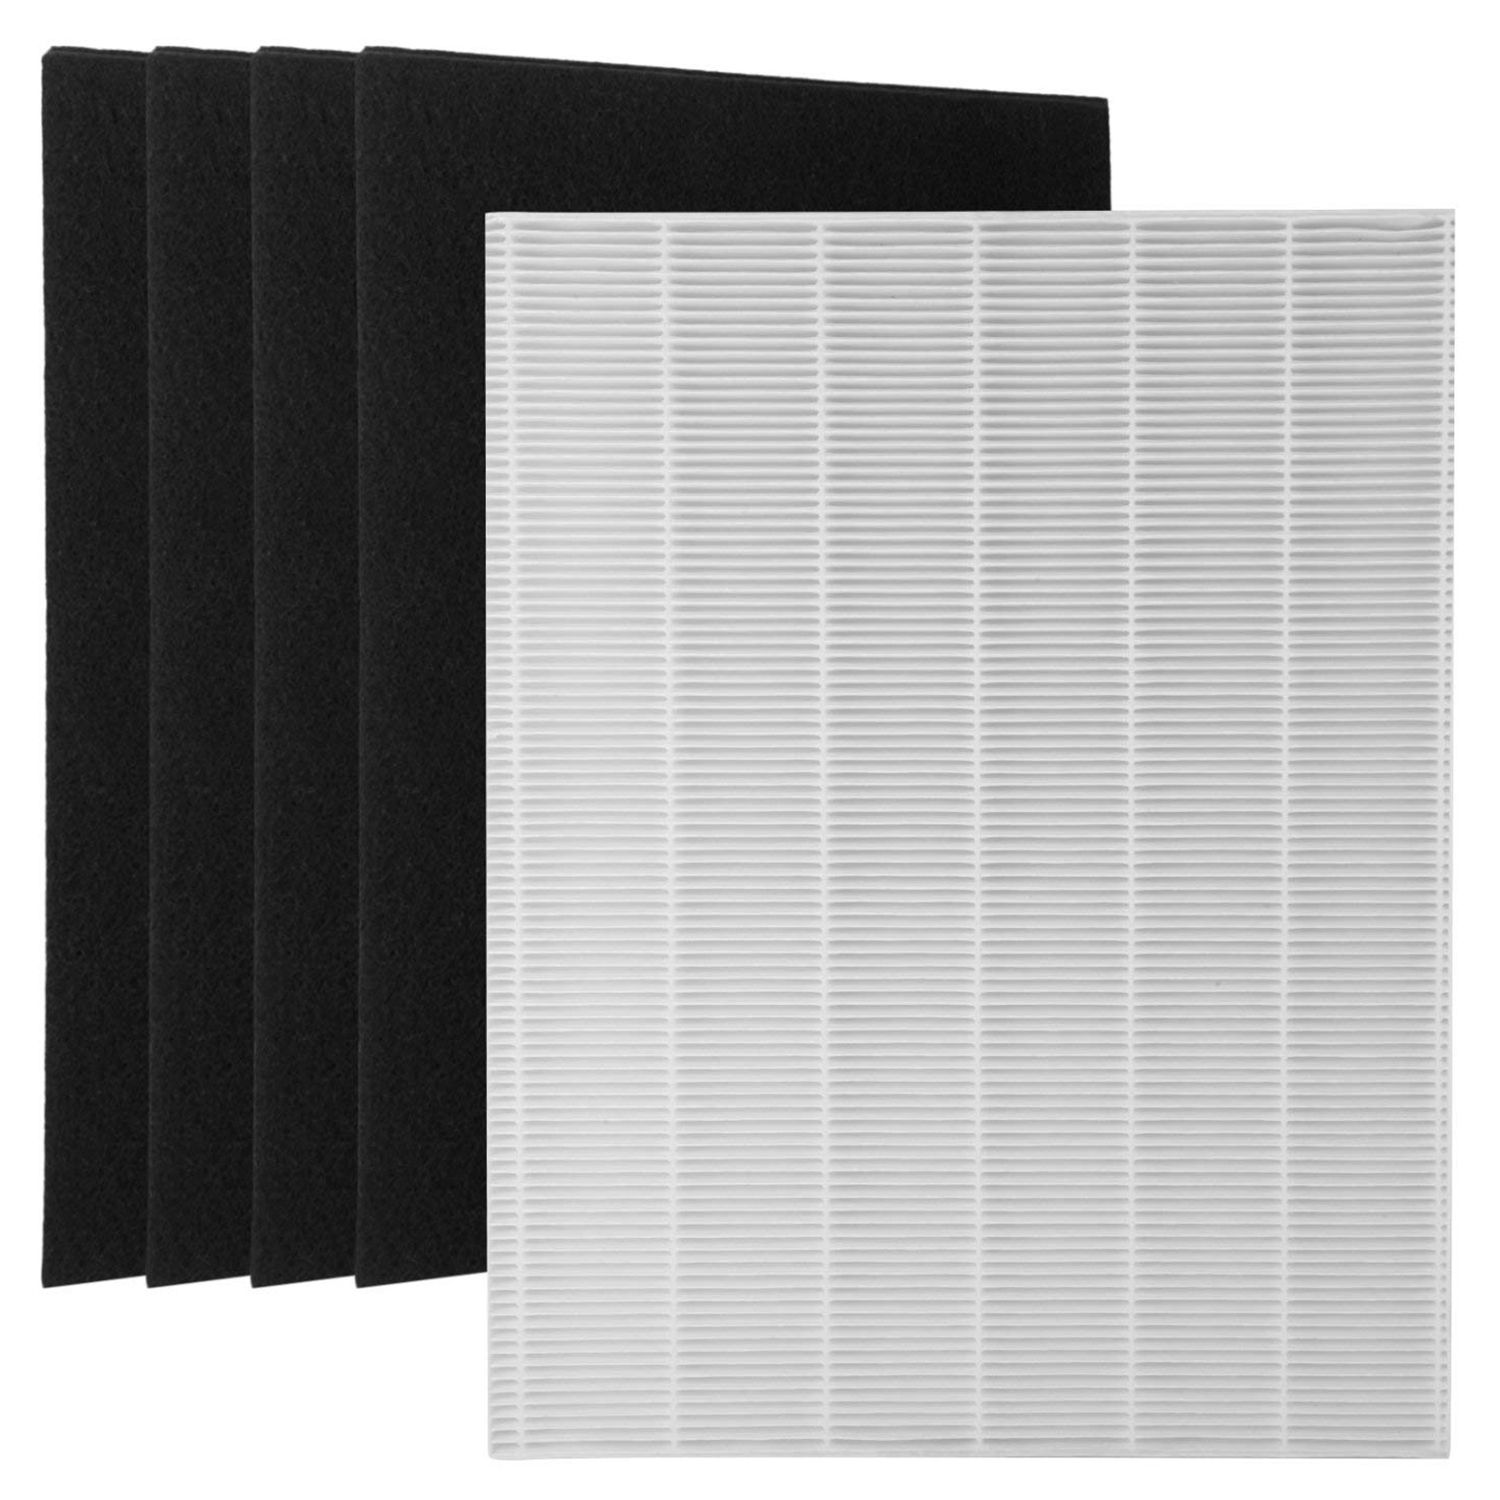 1 True HEPA Filter + 4 Carbon Replacement Filters A 115115 Size 21 for Winix PlasmaWave Air purifier 5300 6300 5300-2 6300-2 P цена